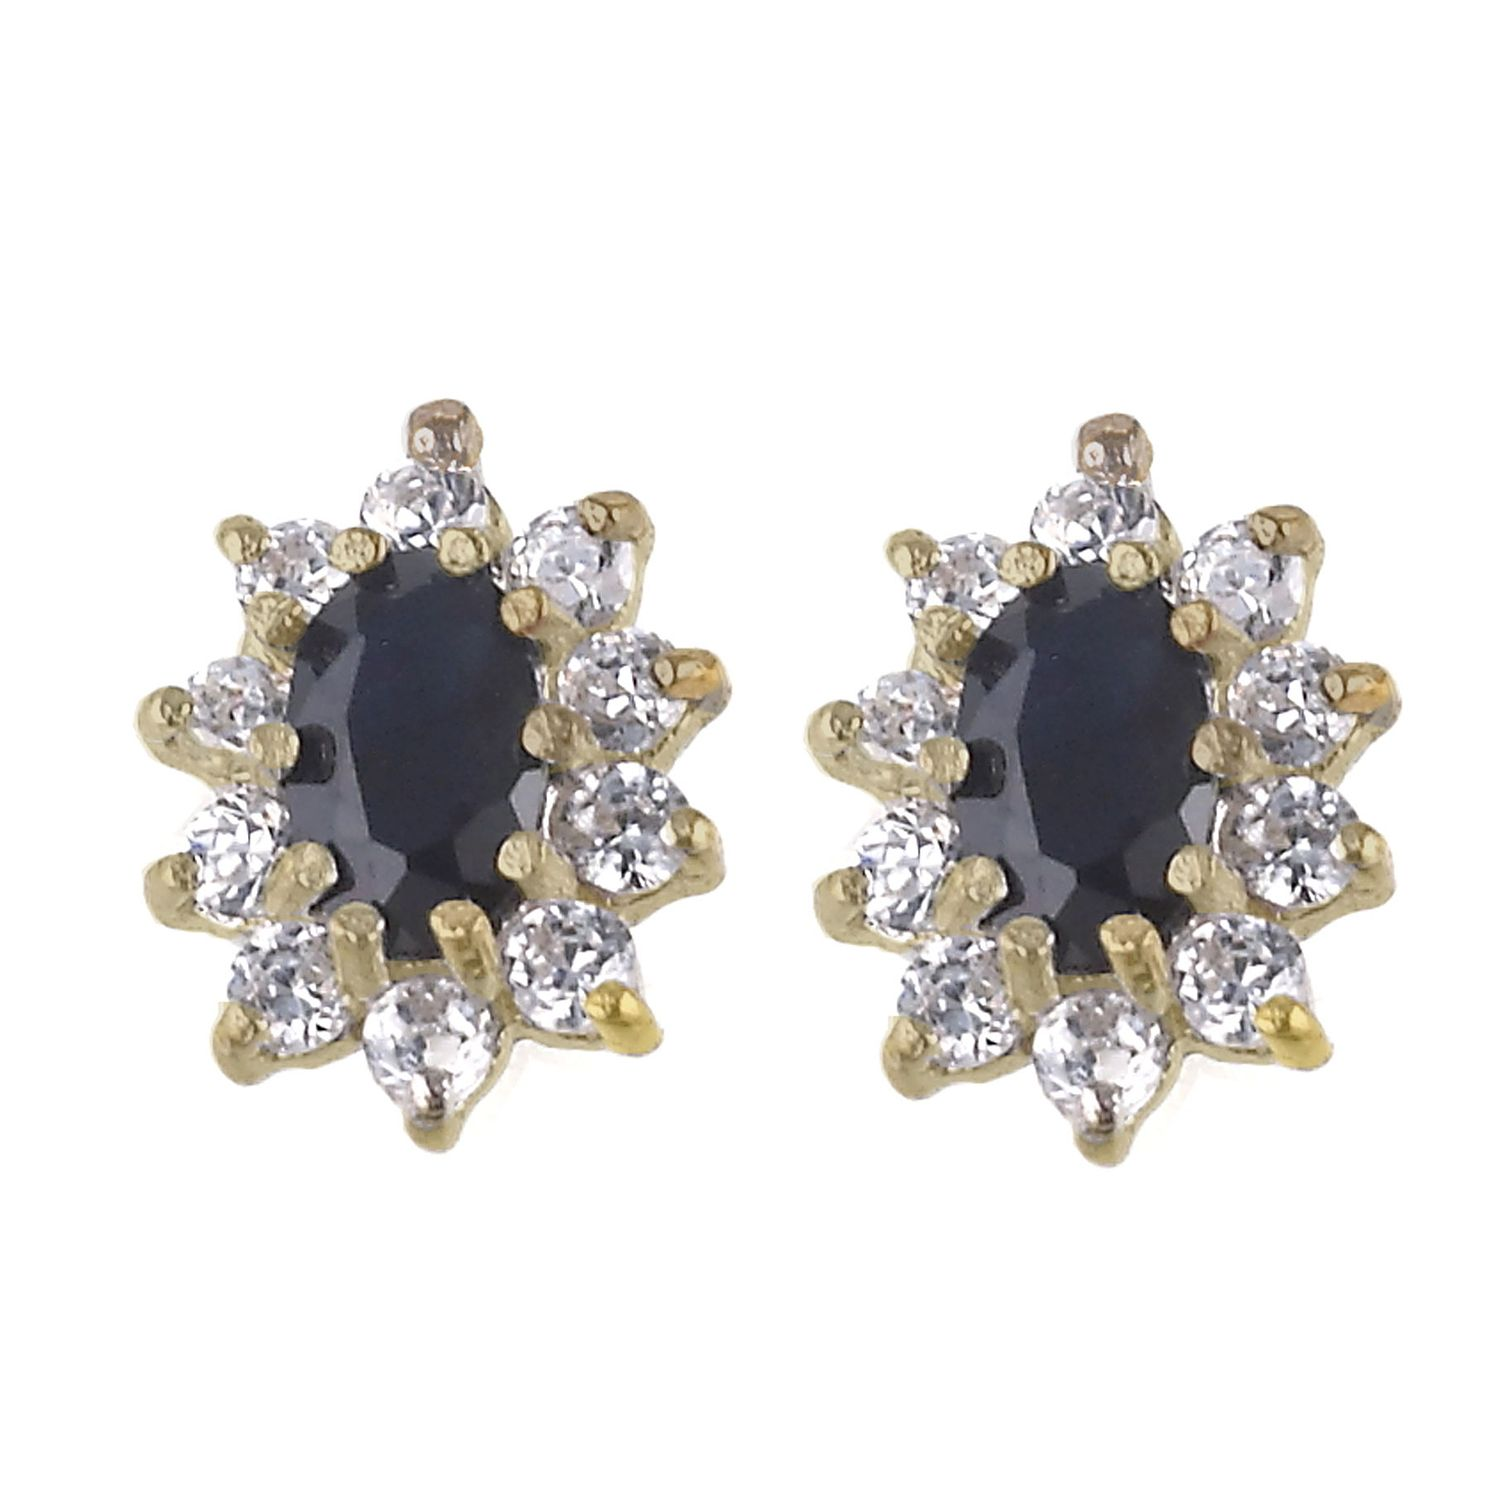 9ct Gold Sapphire Cubic Zirconia Stud Earrings - Product number 6117929